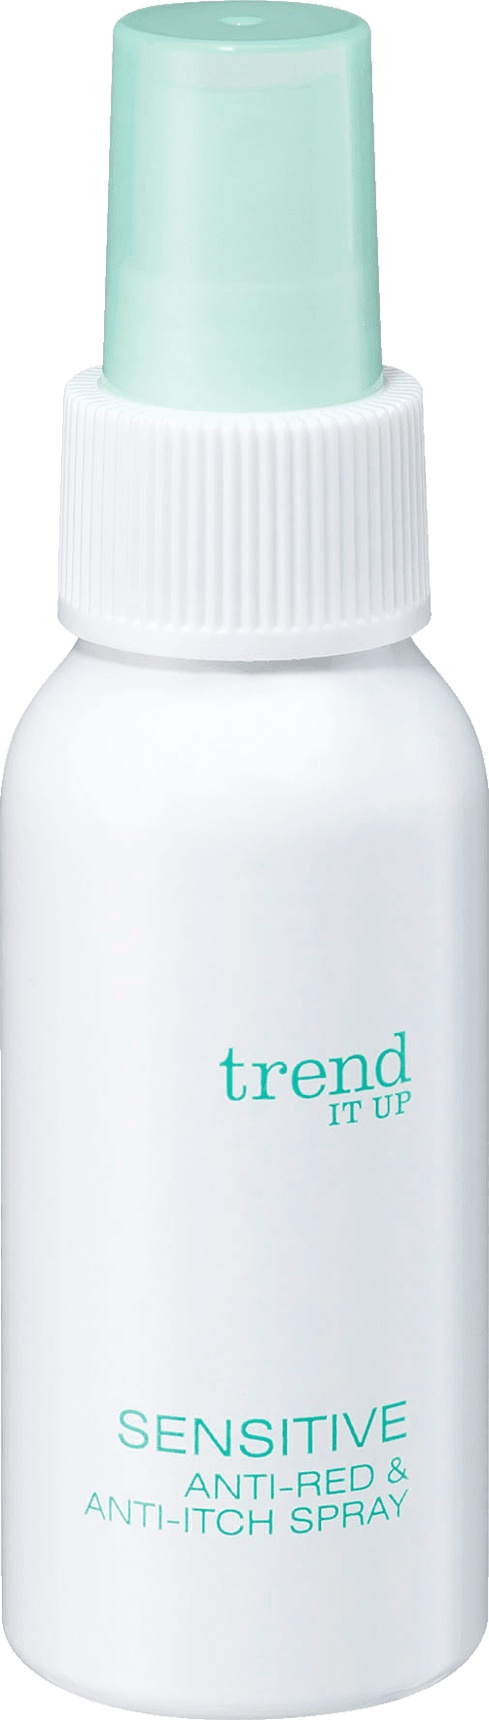 trend IT UP Sensitive Anti-Red And Anti-Itch Spray